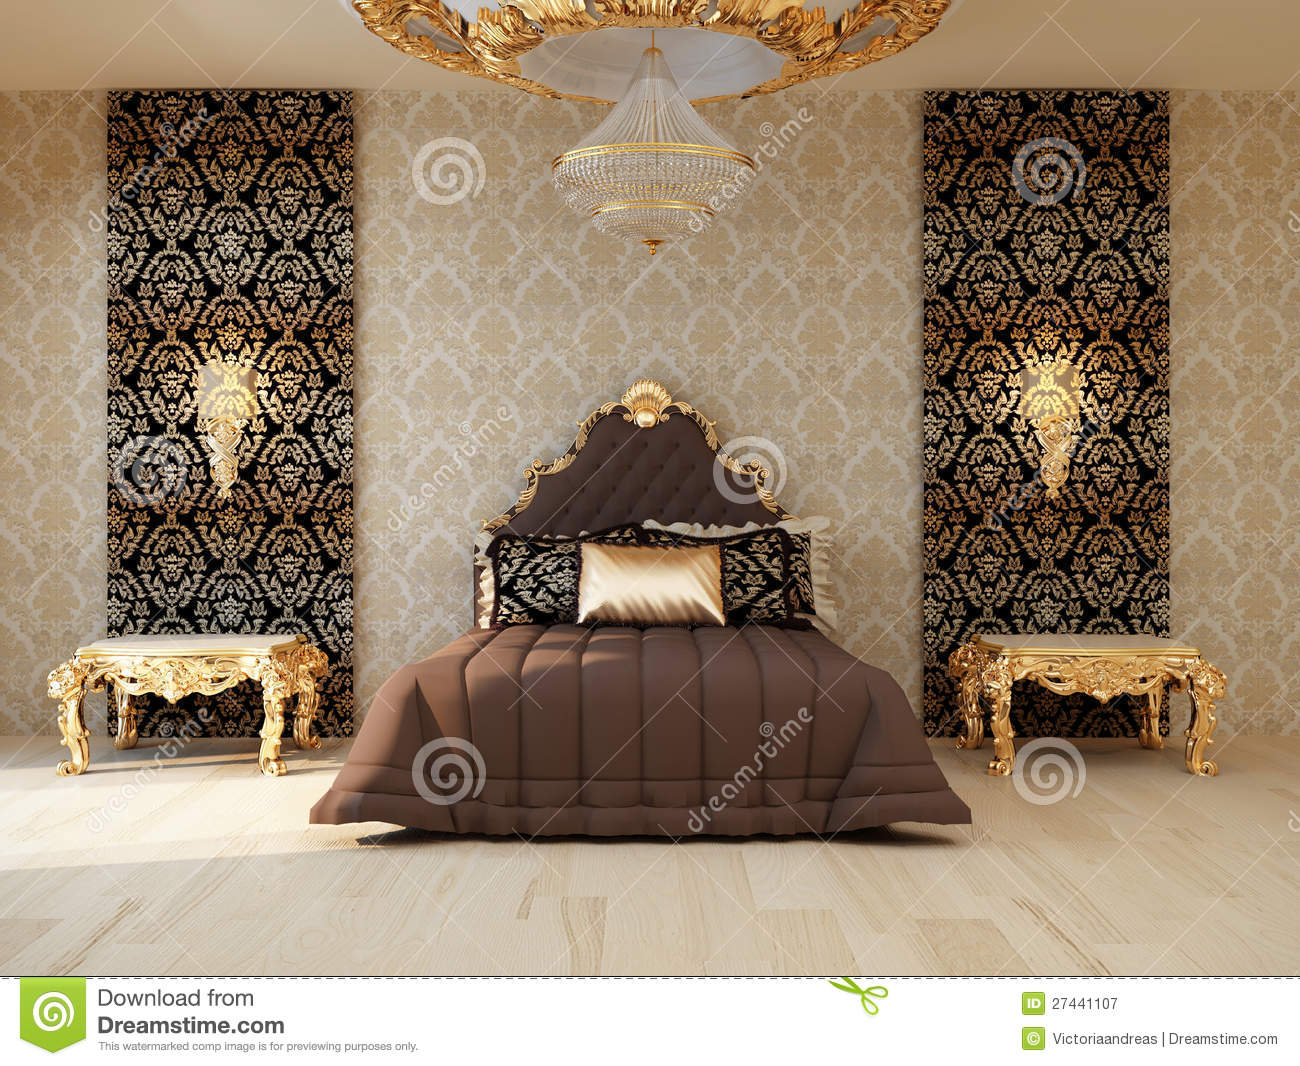 Luxury bedroom with golden furniture royalty free stock photography image 27441107 Home design golden city furniture